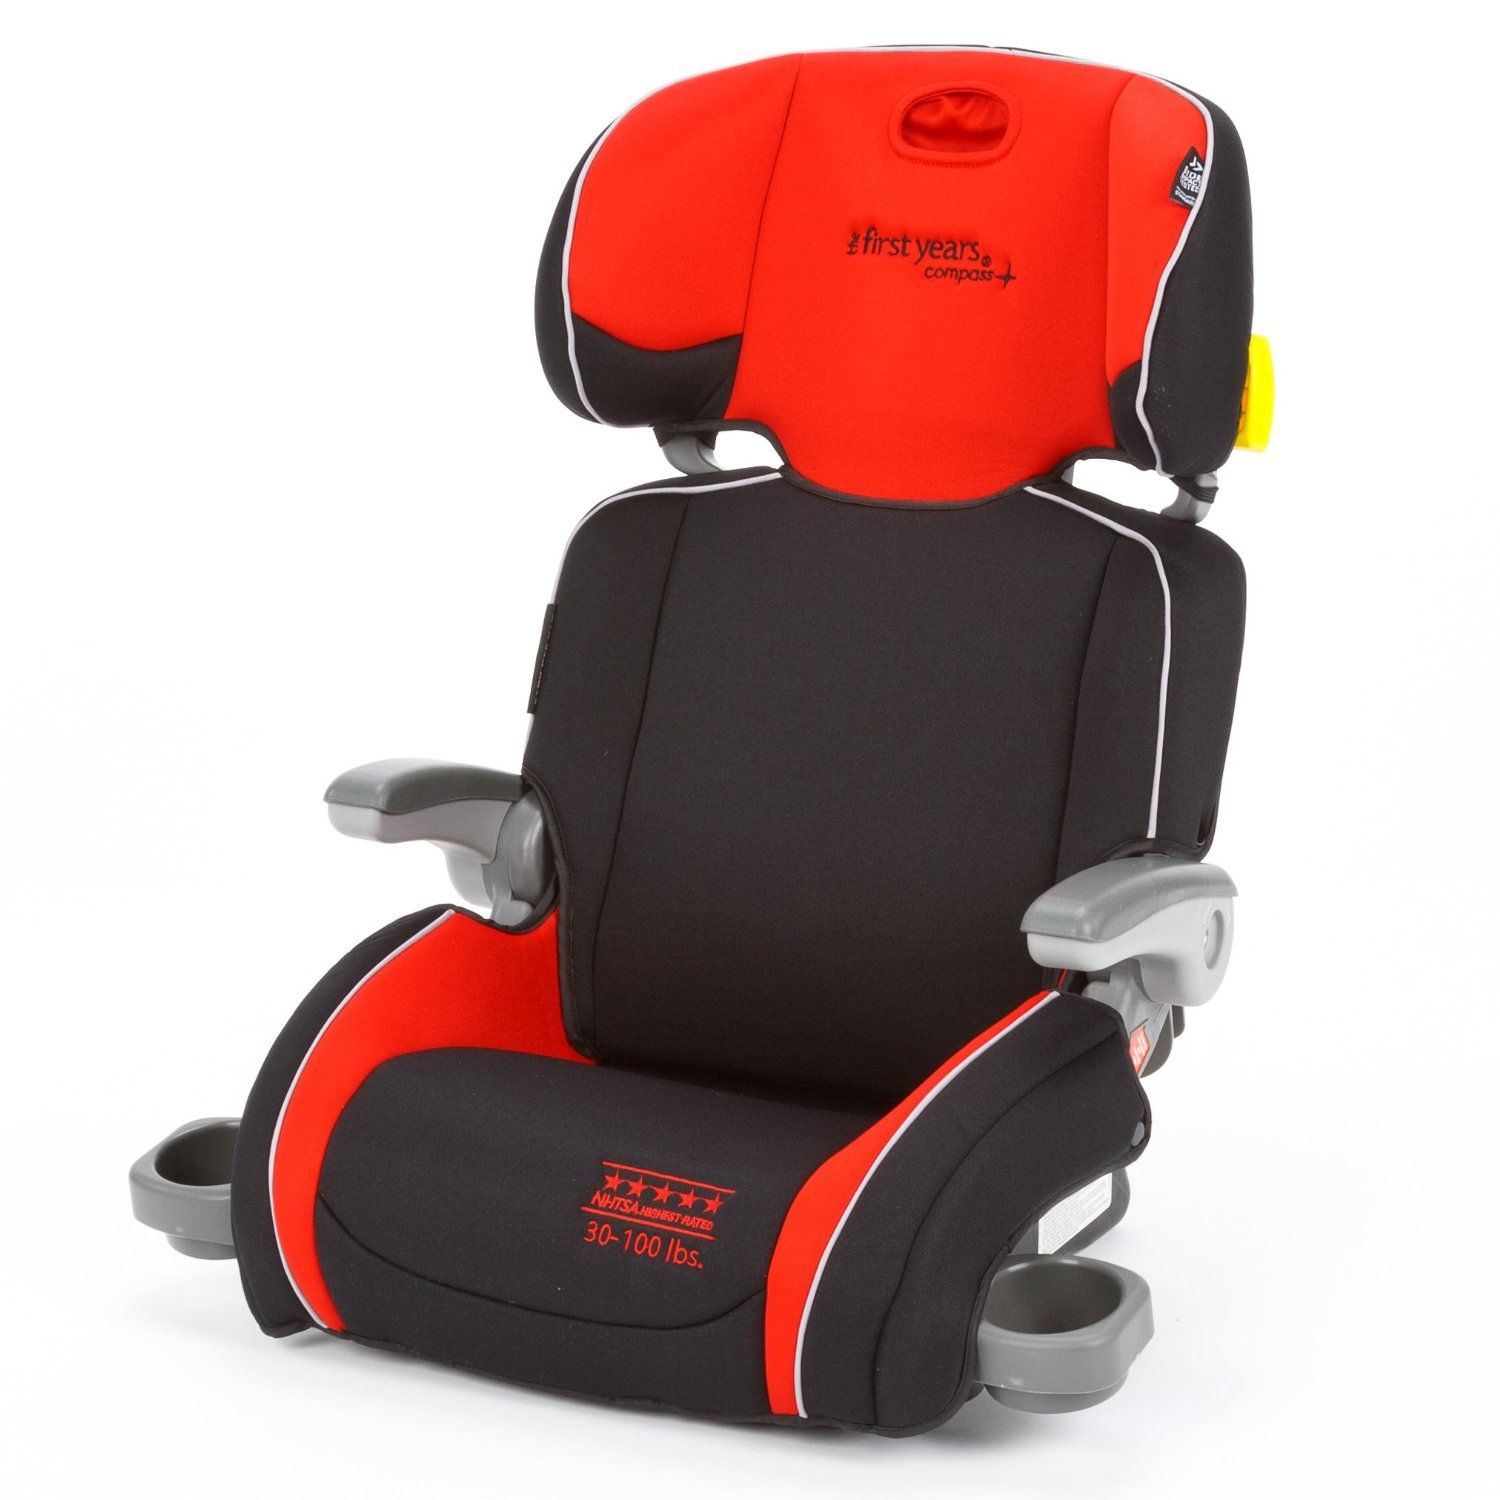 Child Safety Booster Car Seats, The First Years Compass